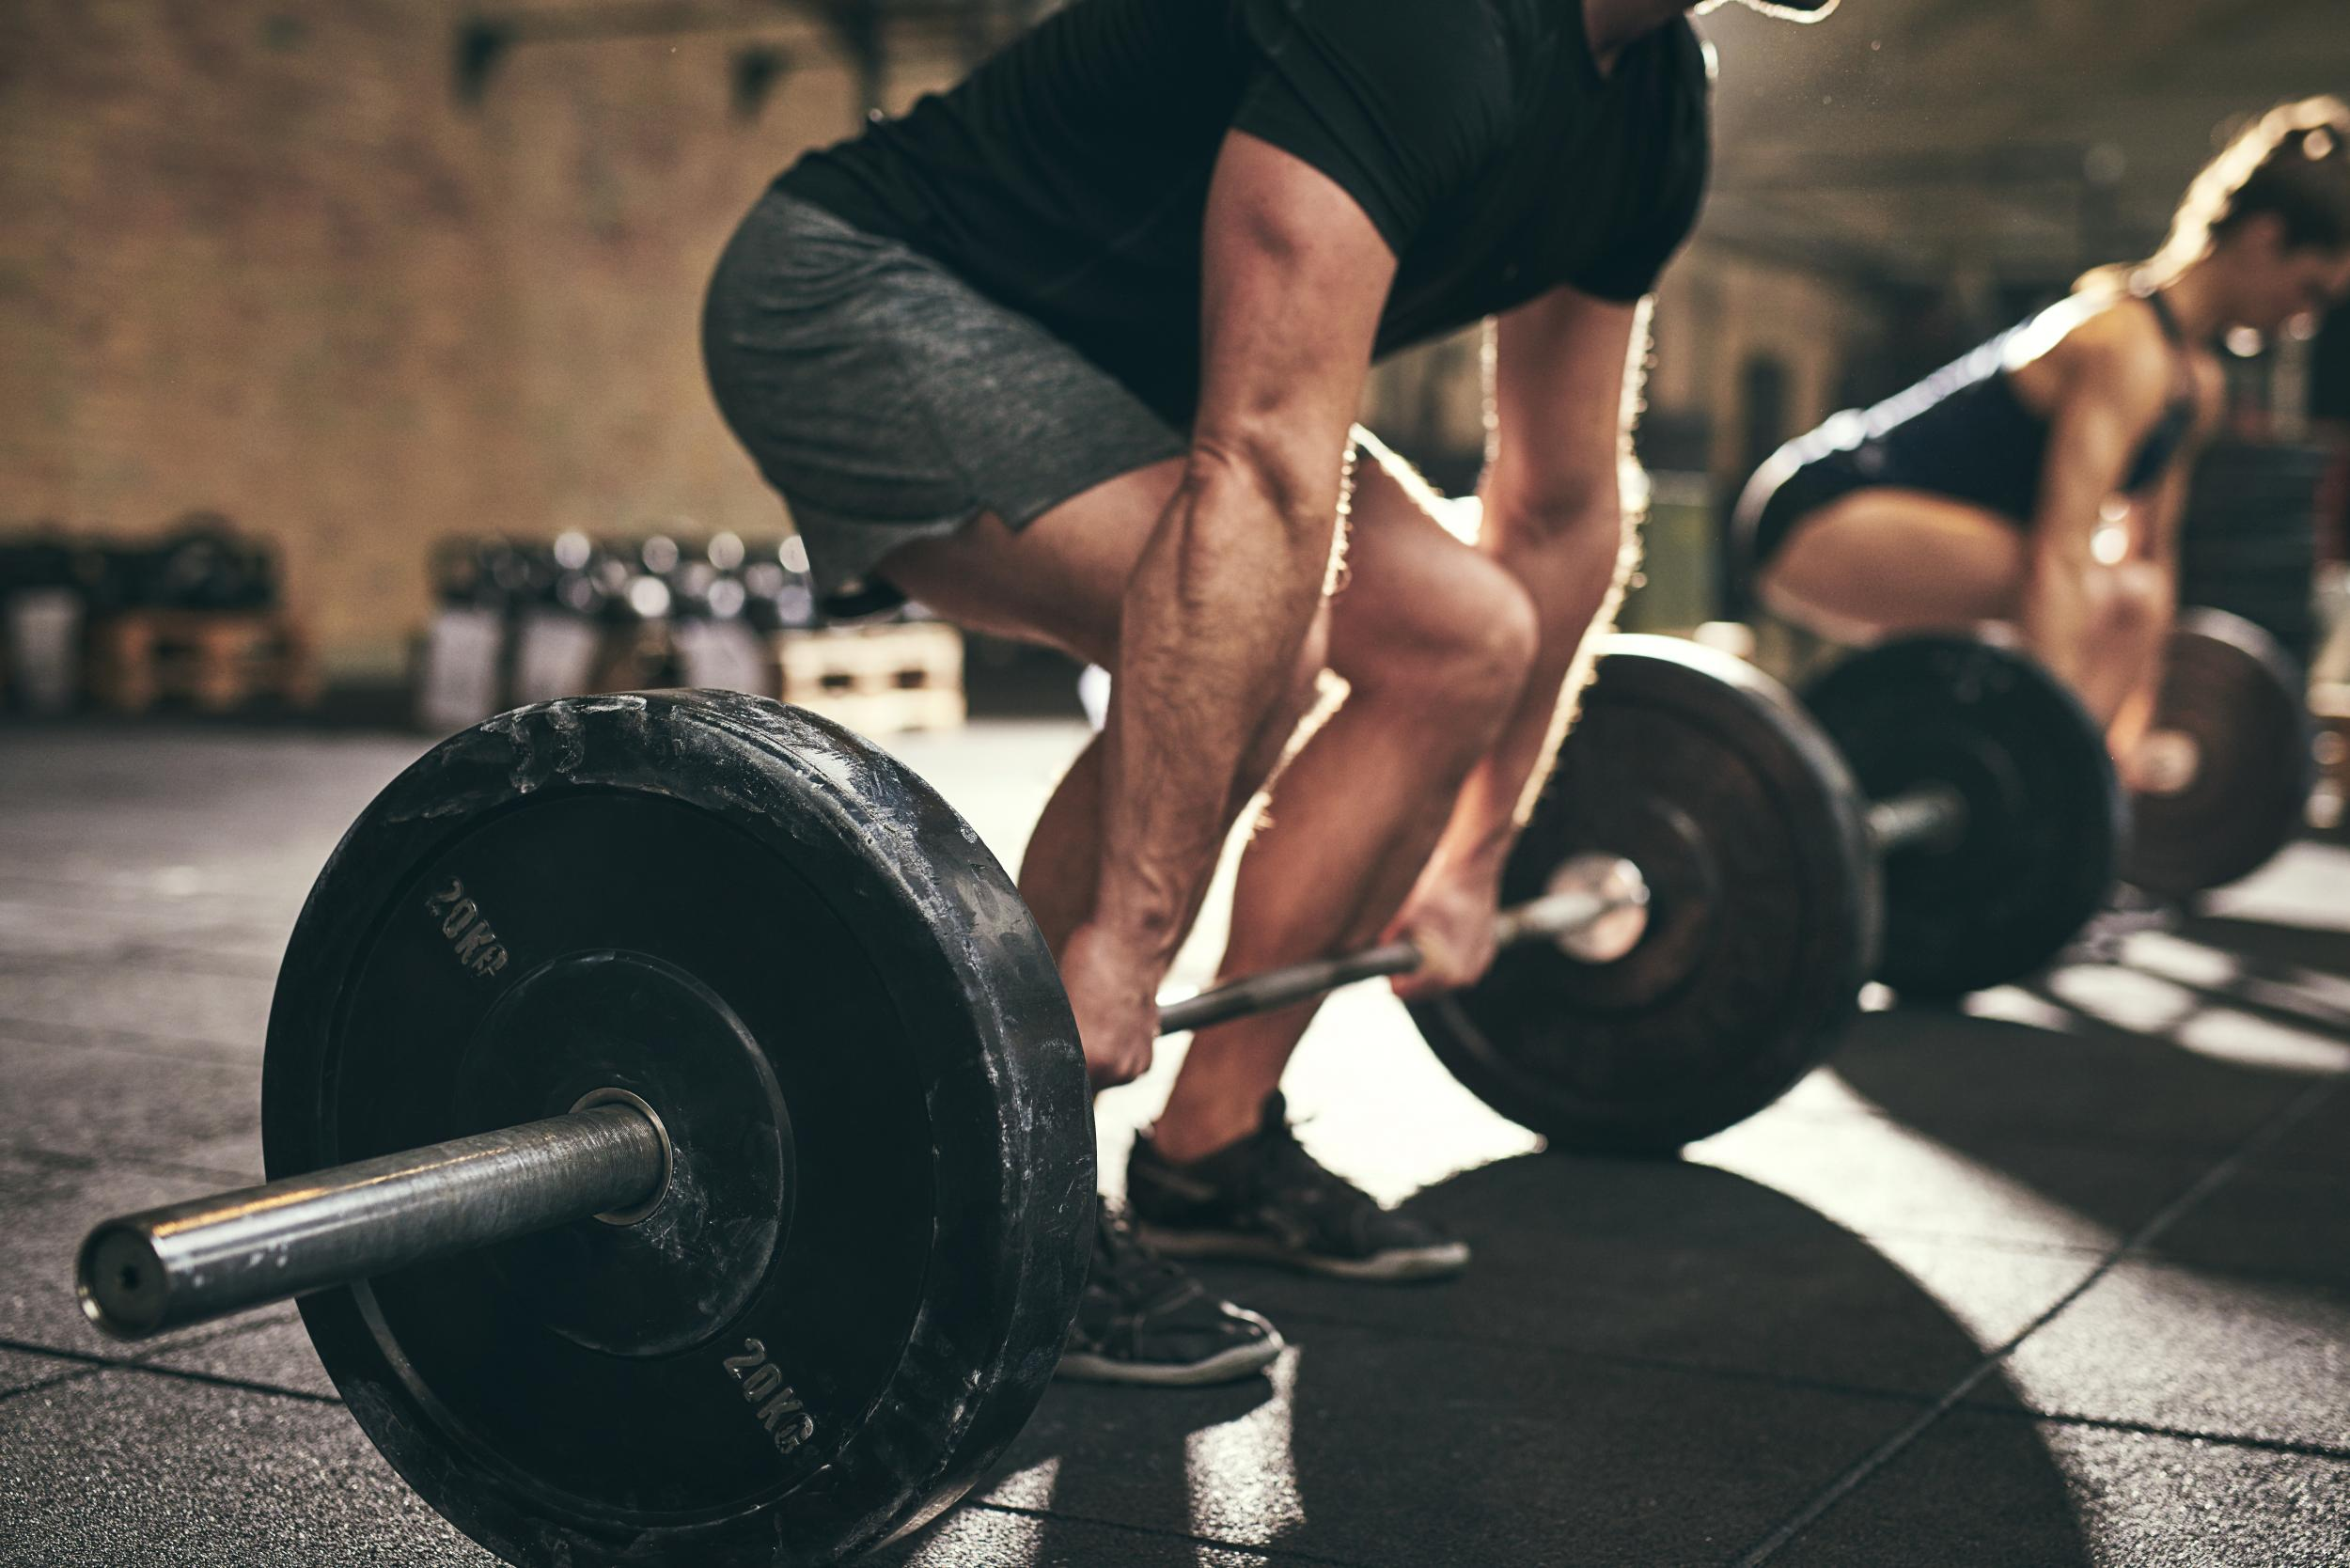 Worrying' increase in gym users abusing steroids to improve